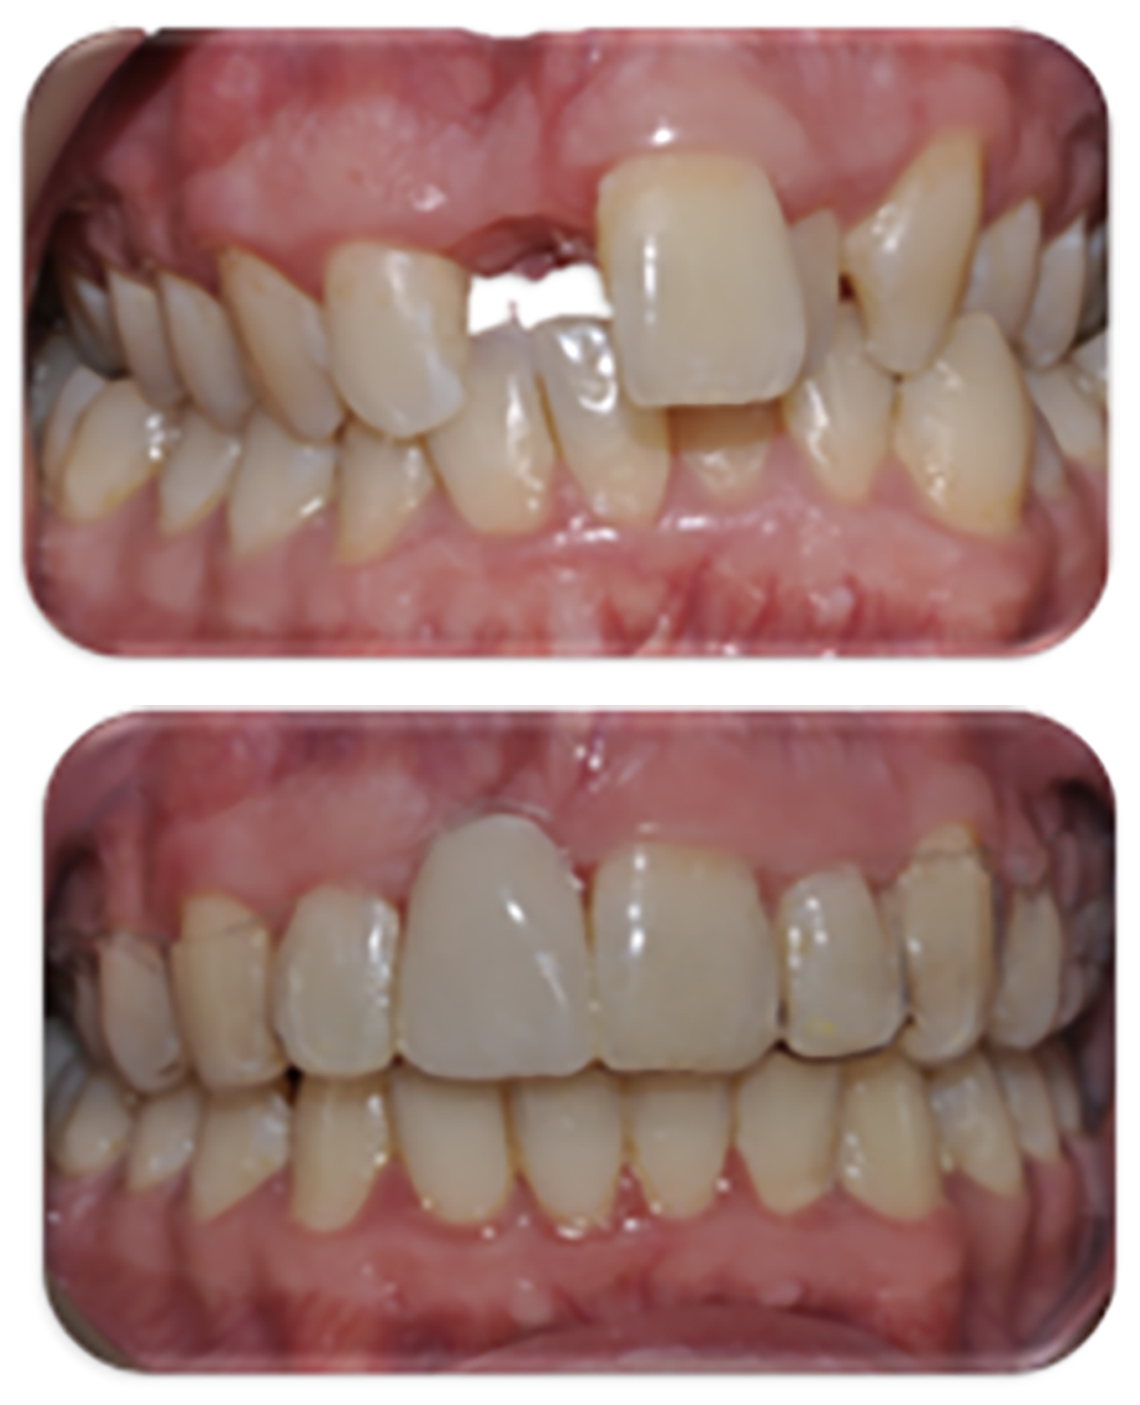 Replacement of the top denture denture with an implant tooth -